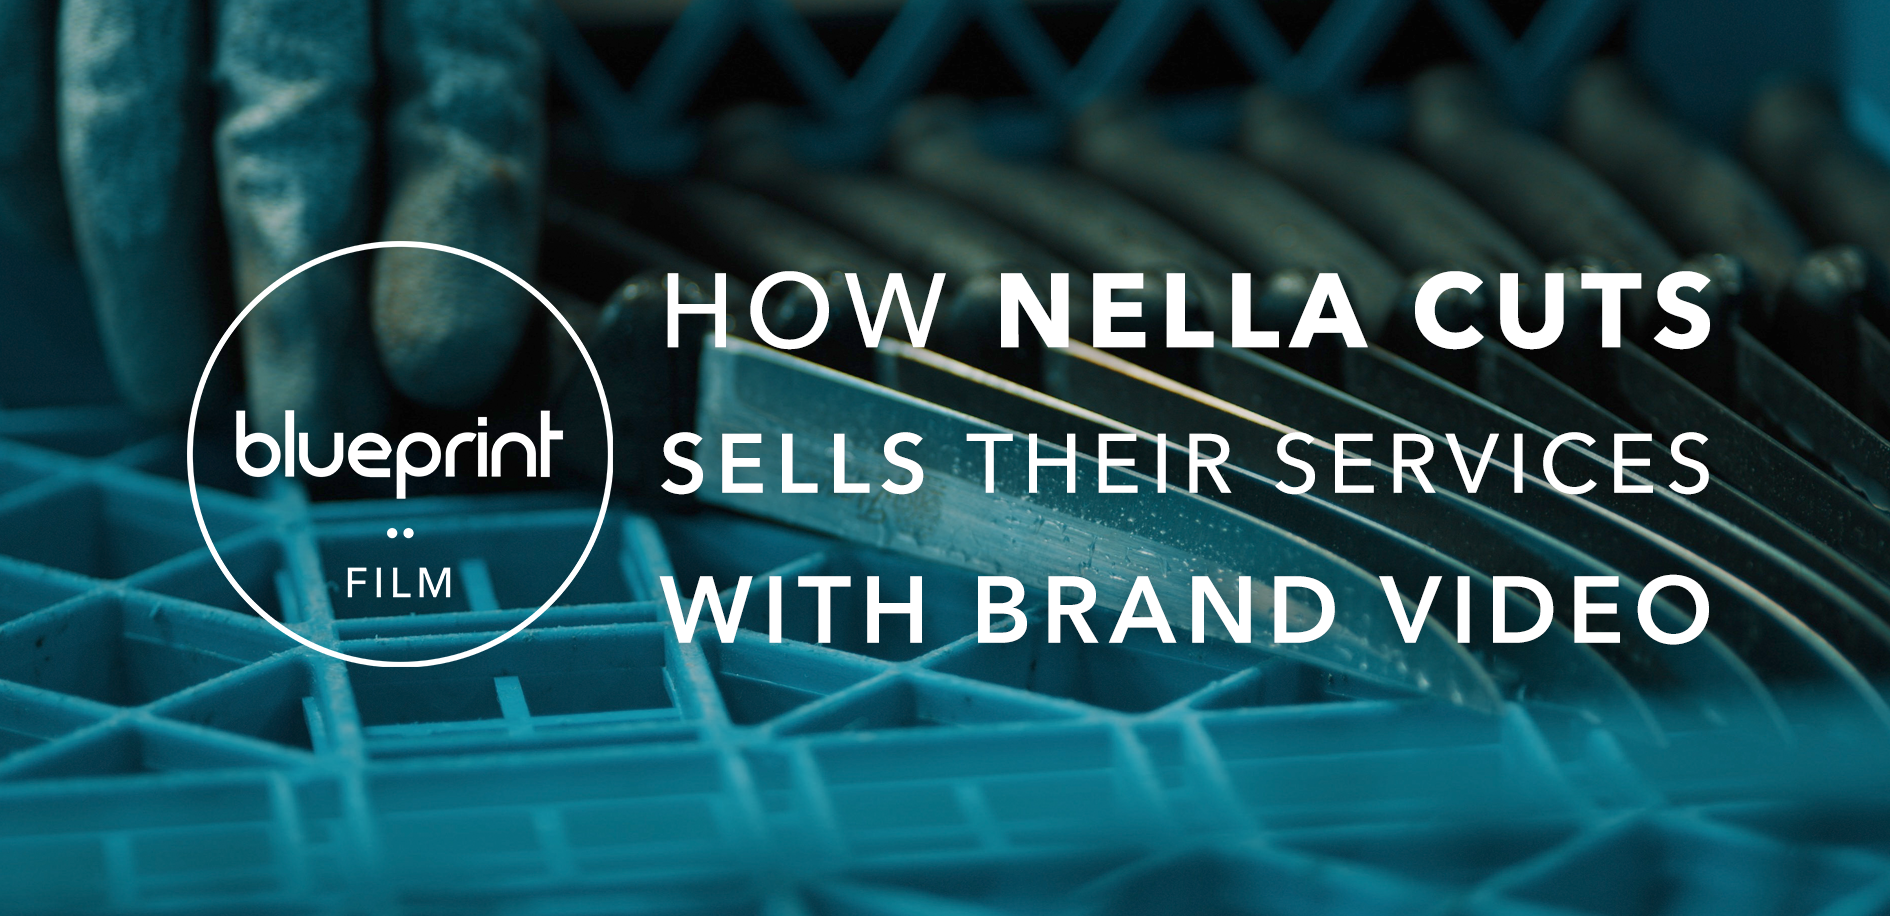 how nella cuts sells their services with brand video